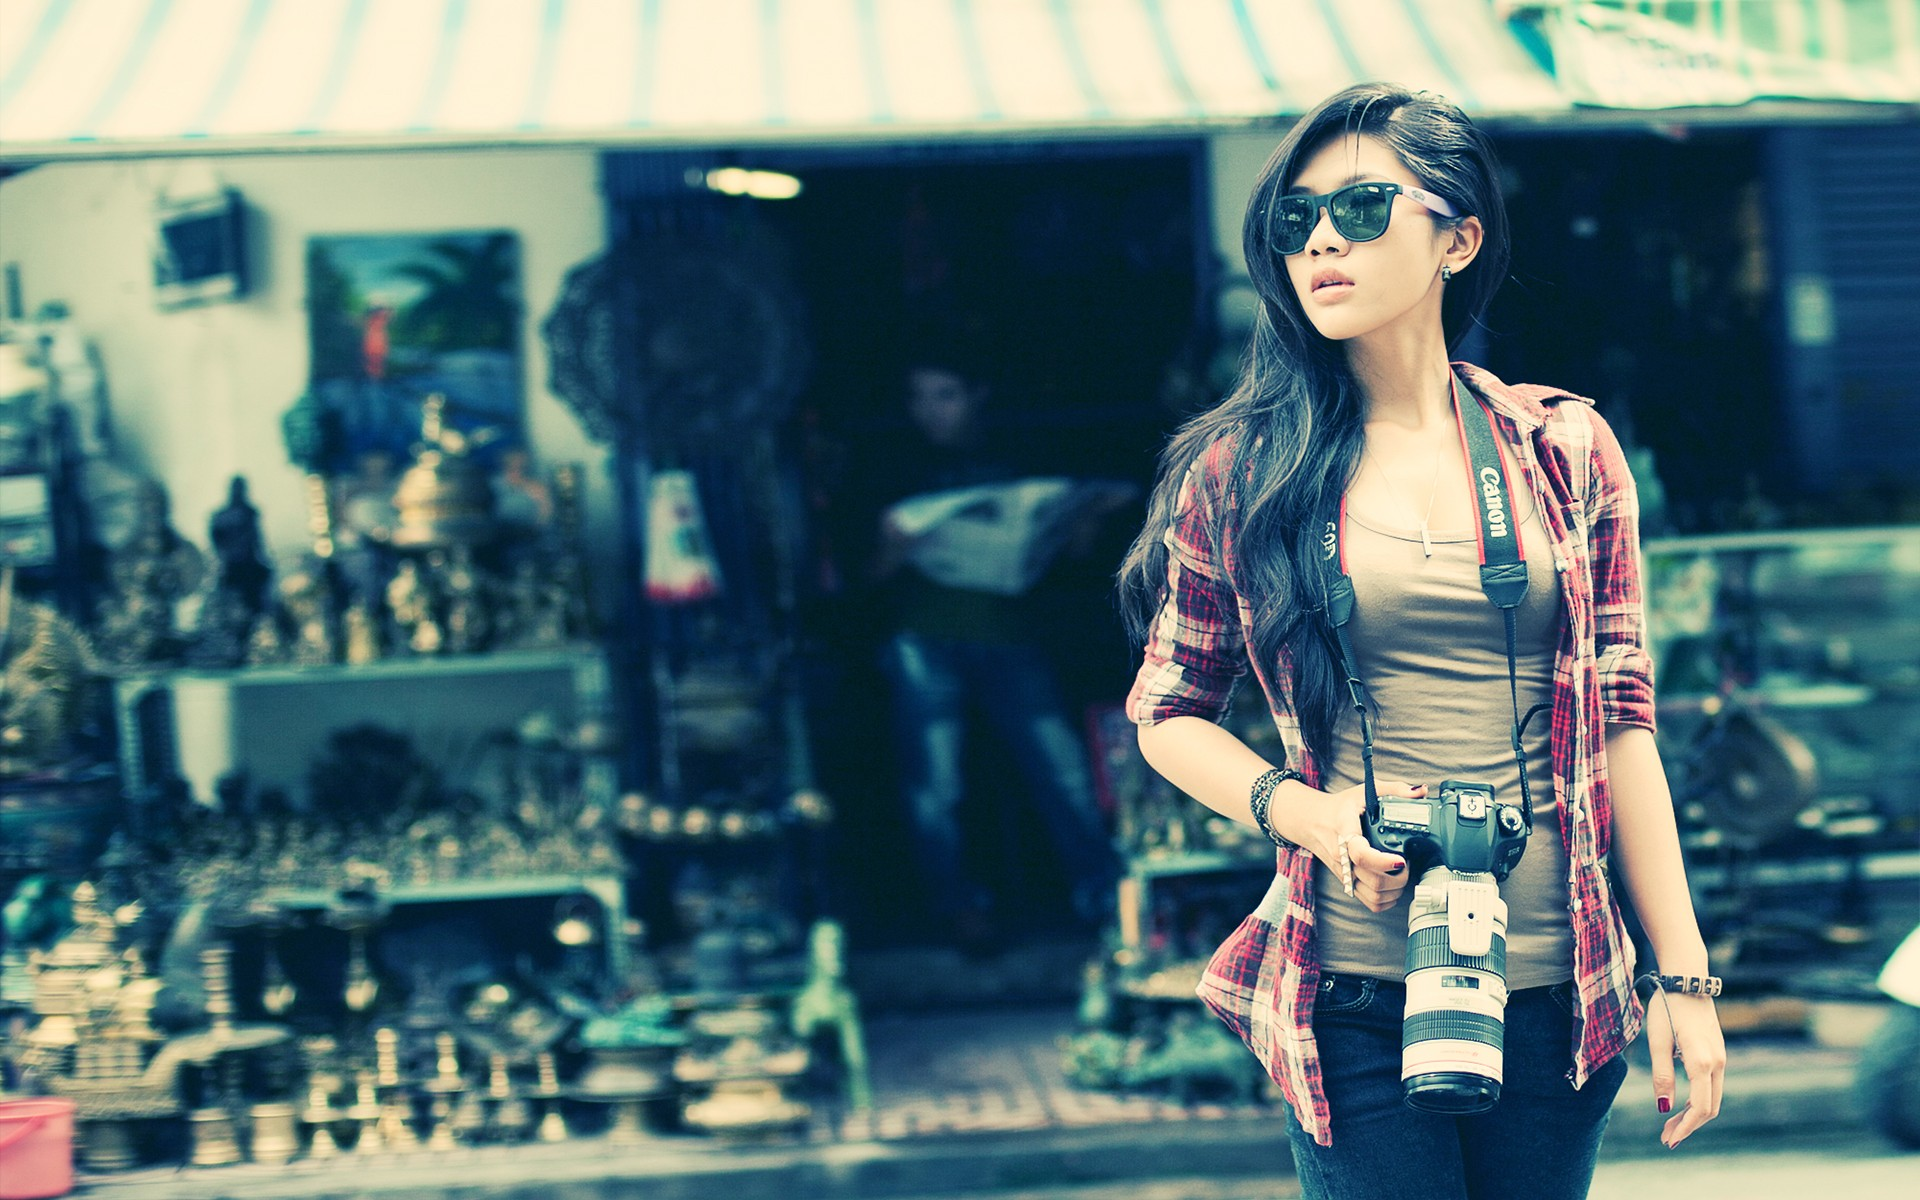 Download Girl With Camera Wallpaper Gallery